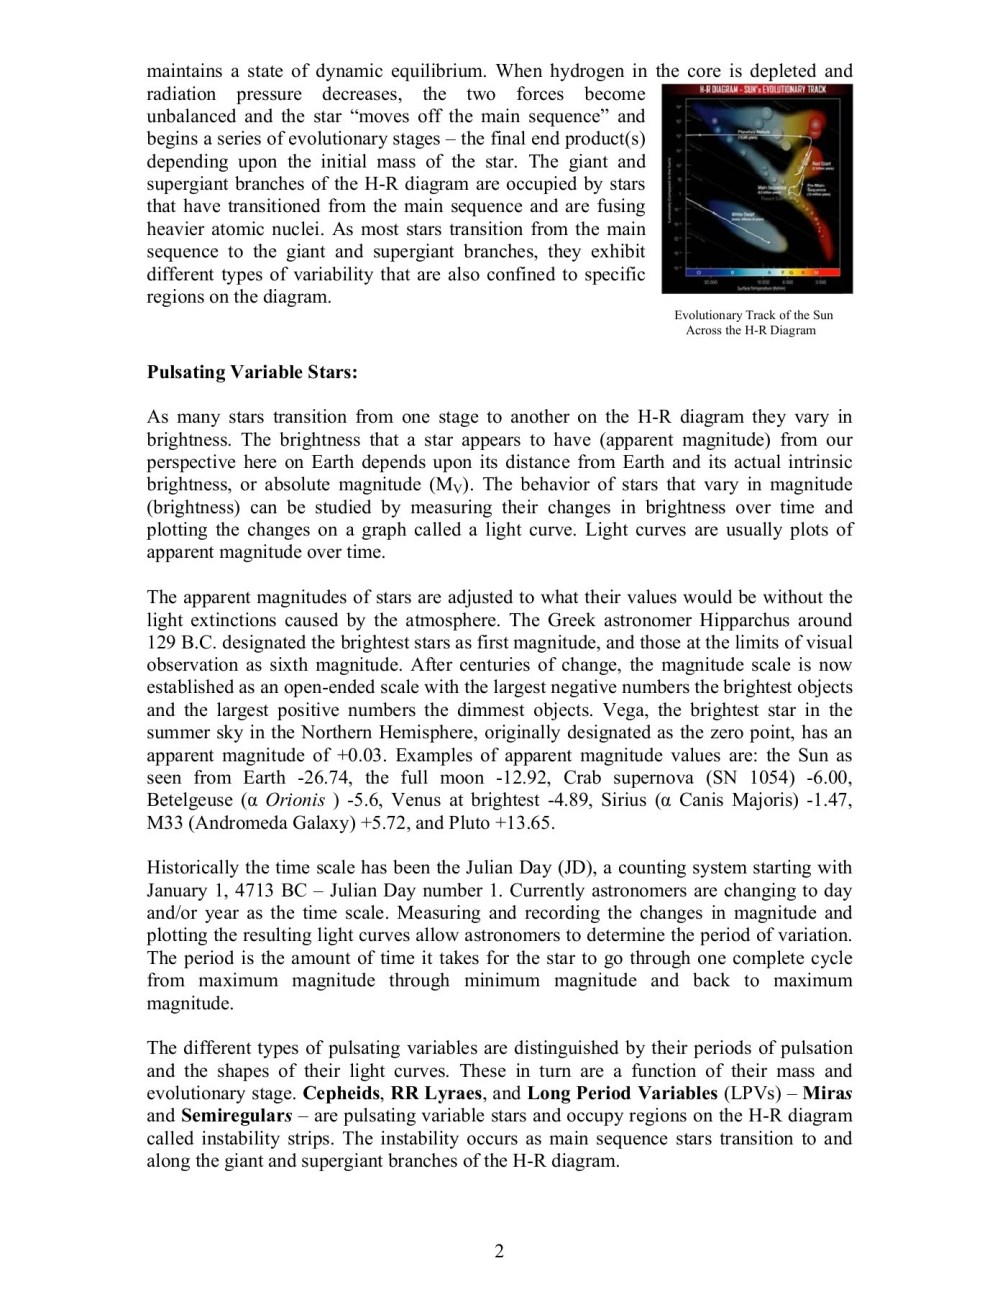 medium resolution of plotting variable stars on the h r diagram activity pages 1 7 text version fliphtml5